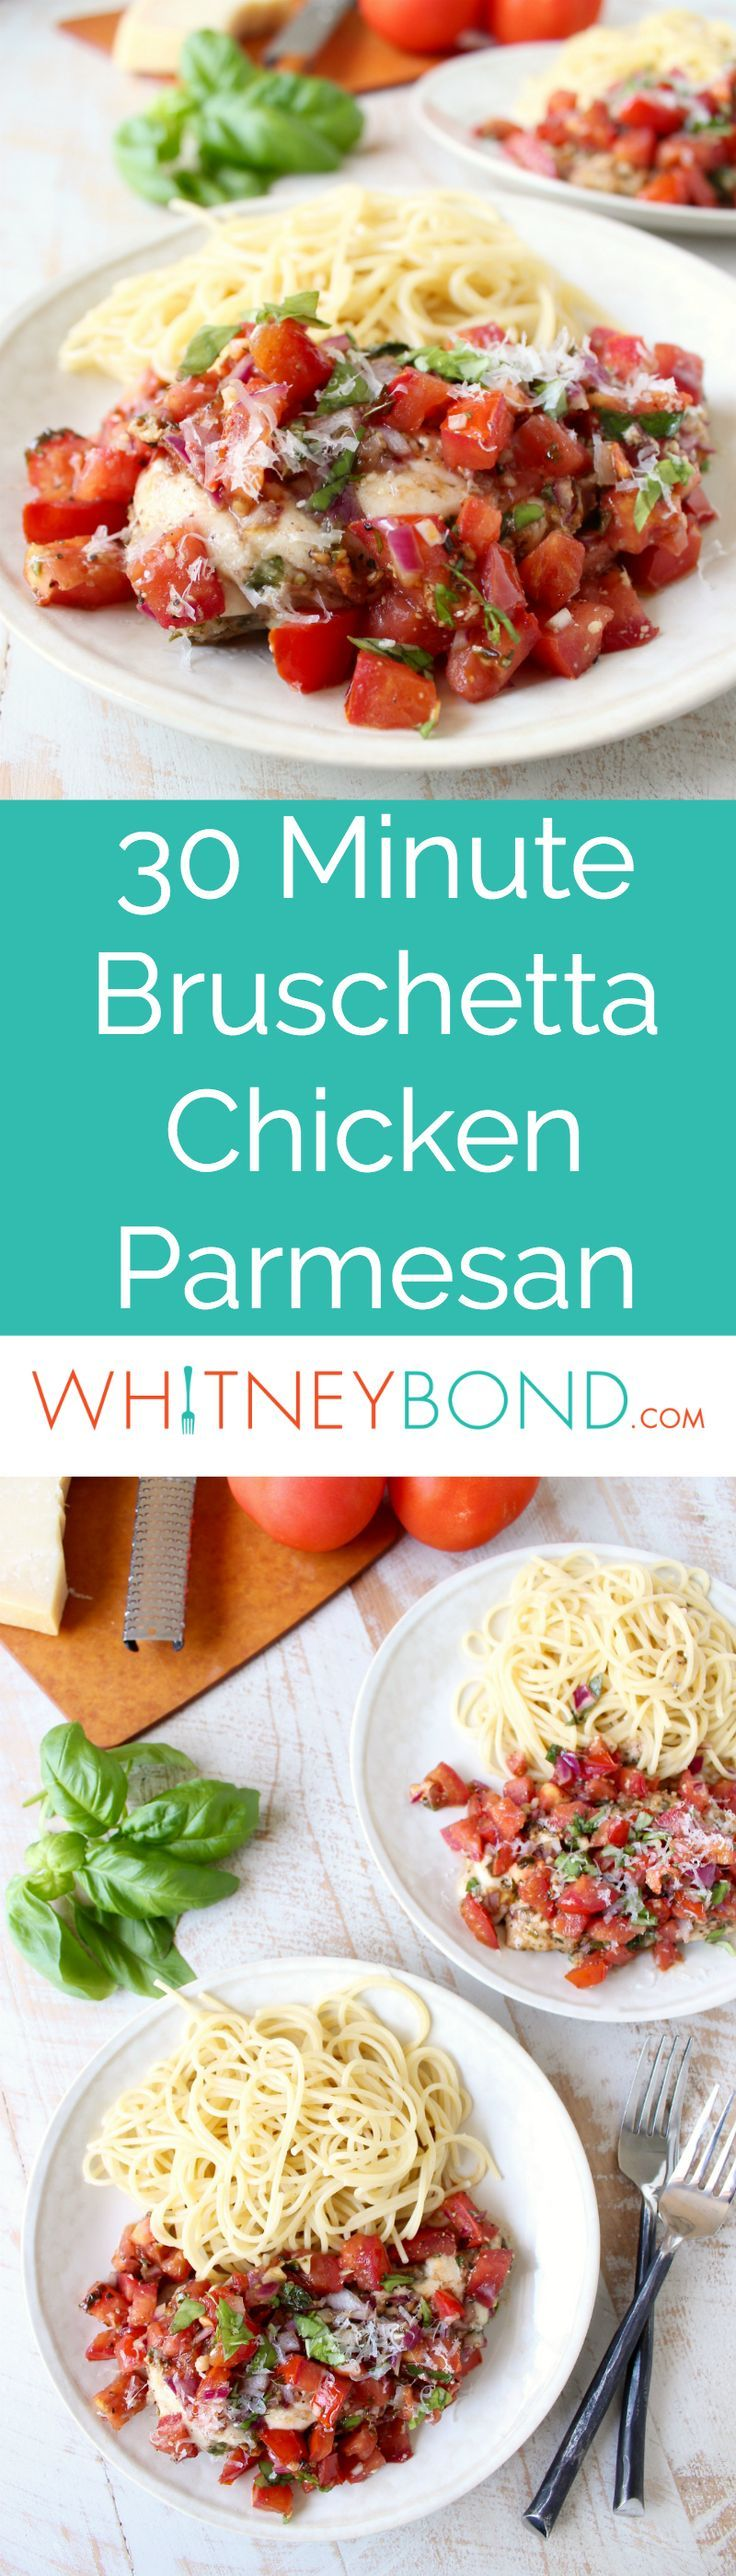 Bruschetta Chicken Parmesan : easy dinner plates - pezcame.com